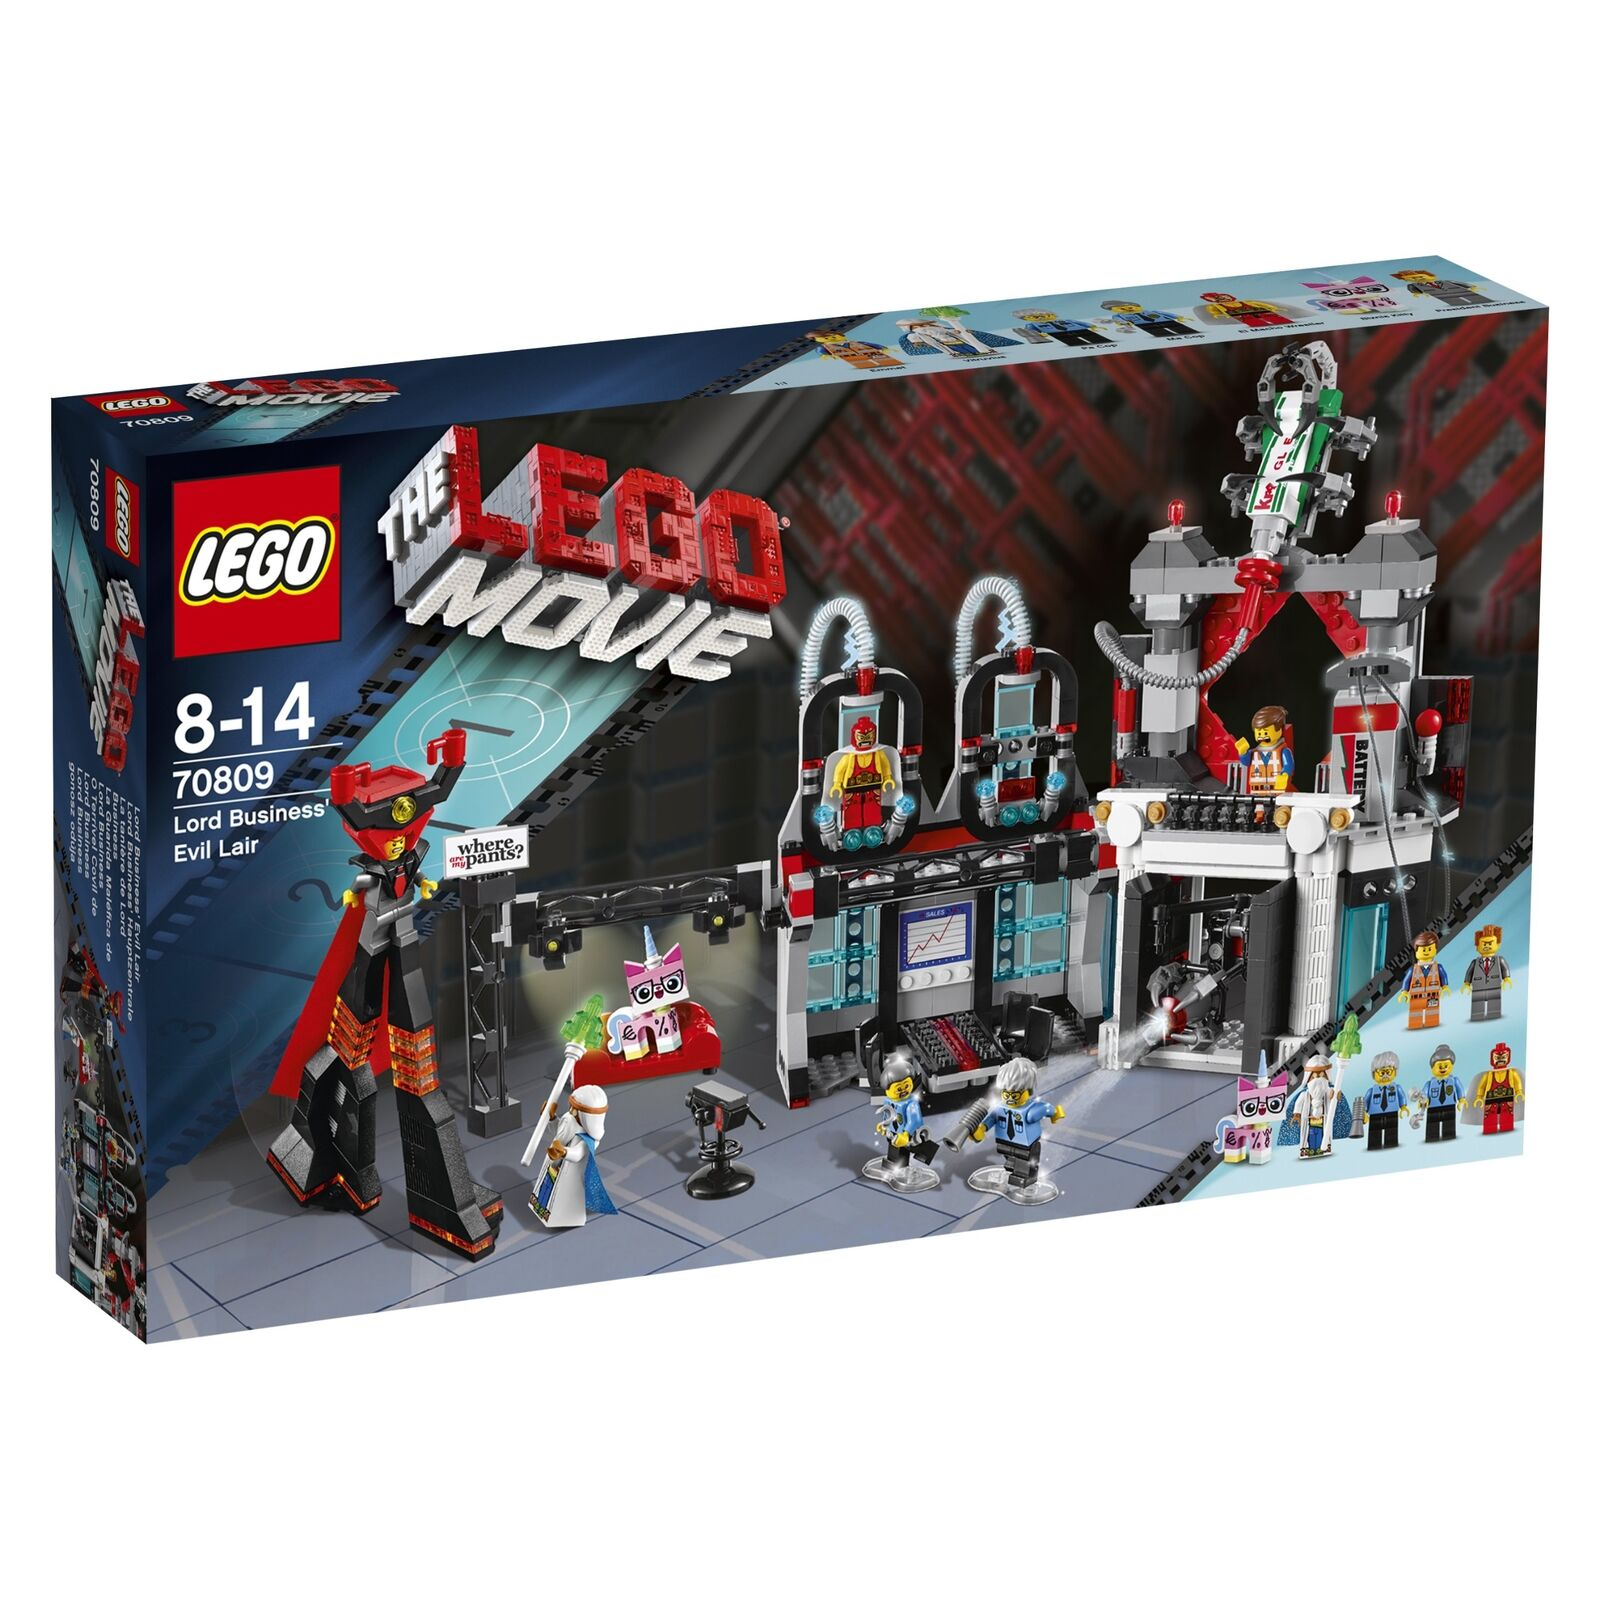 LEGO 70809 Movie Lord Business' Evil Lair